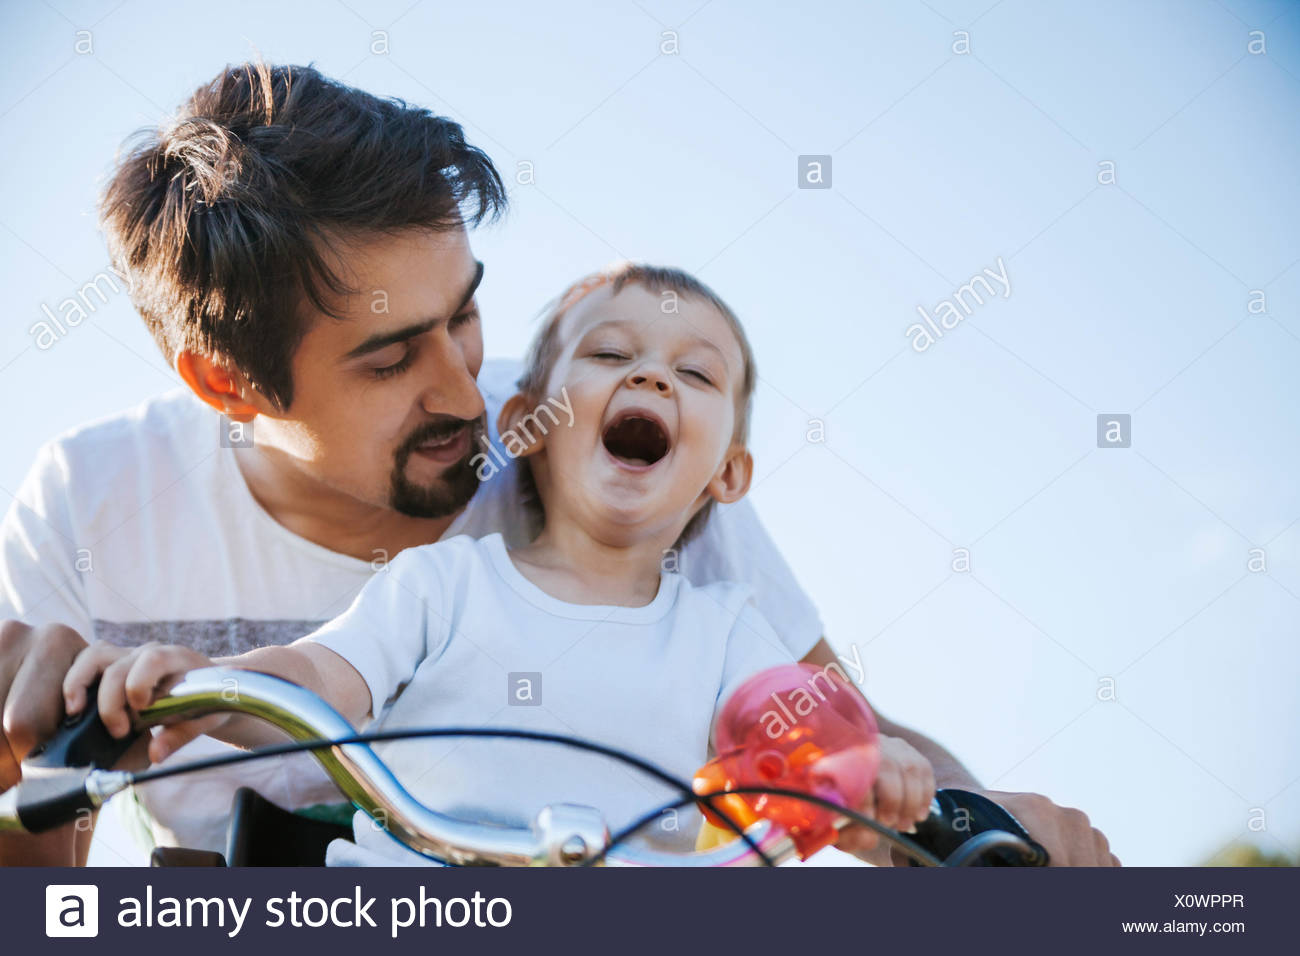 Laughing little boy on bicycle tour with his father - Stock Image